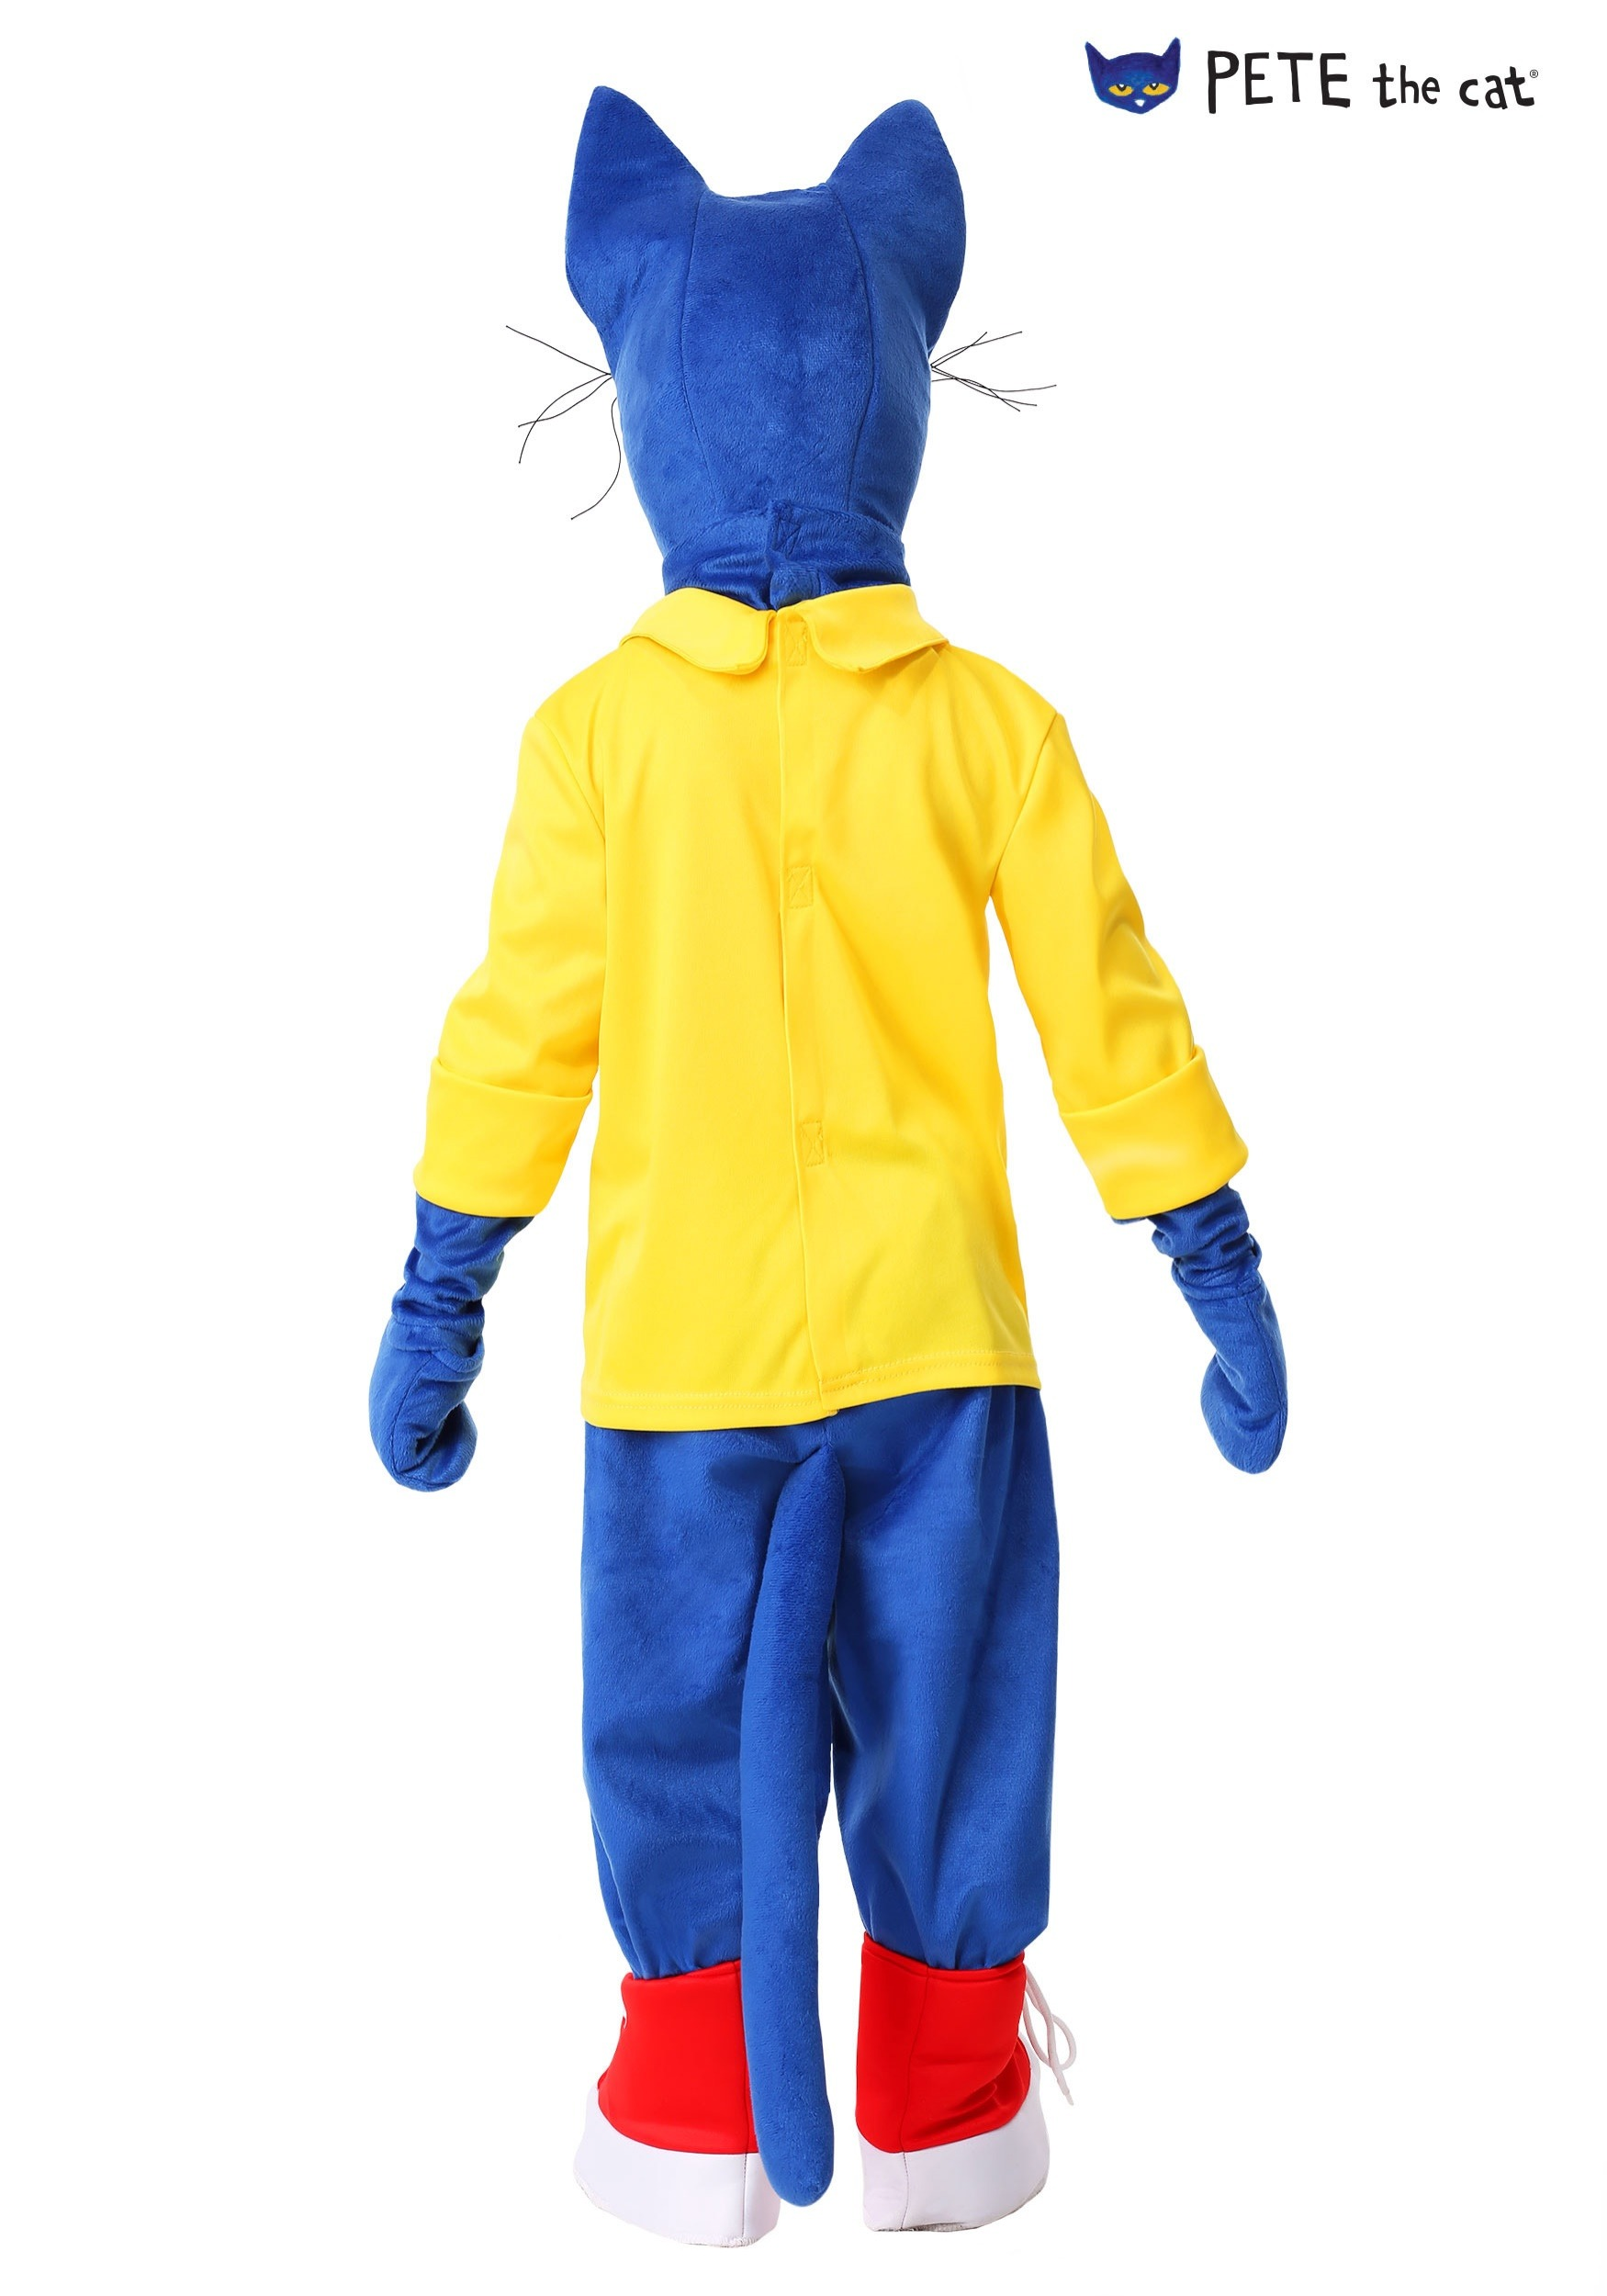 f897012b6d74d Toddler Pete the Cat Costume Toddler Pete the Cat Costume2